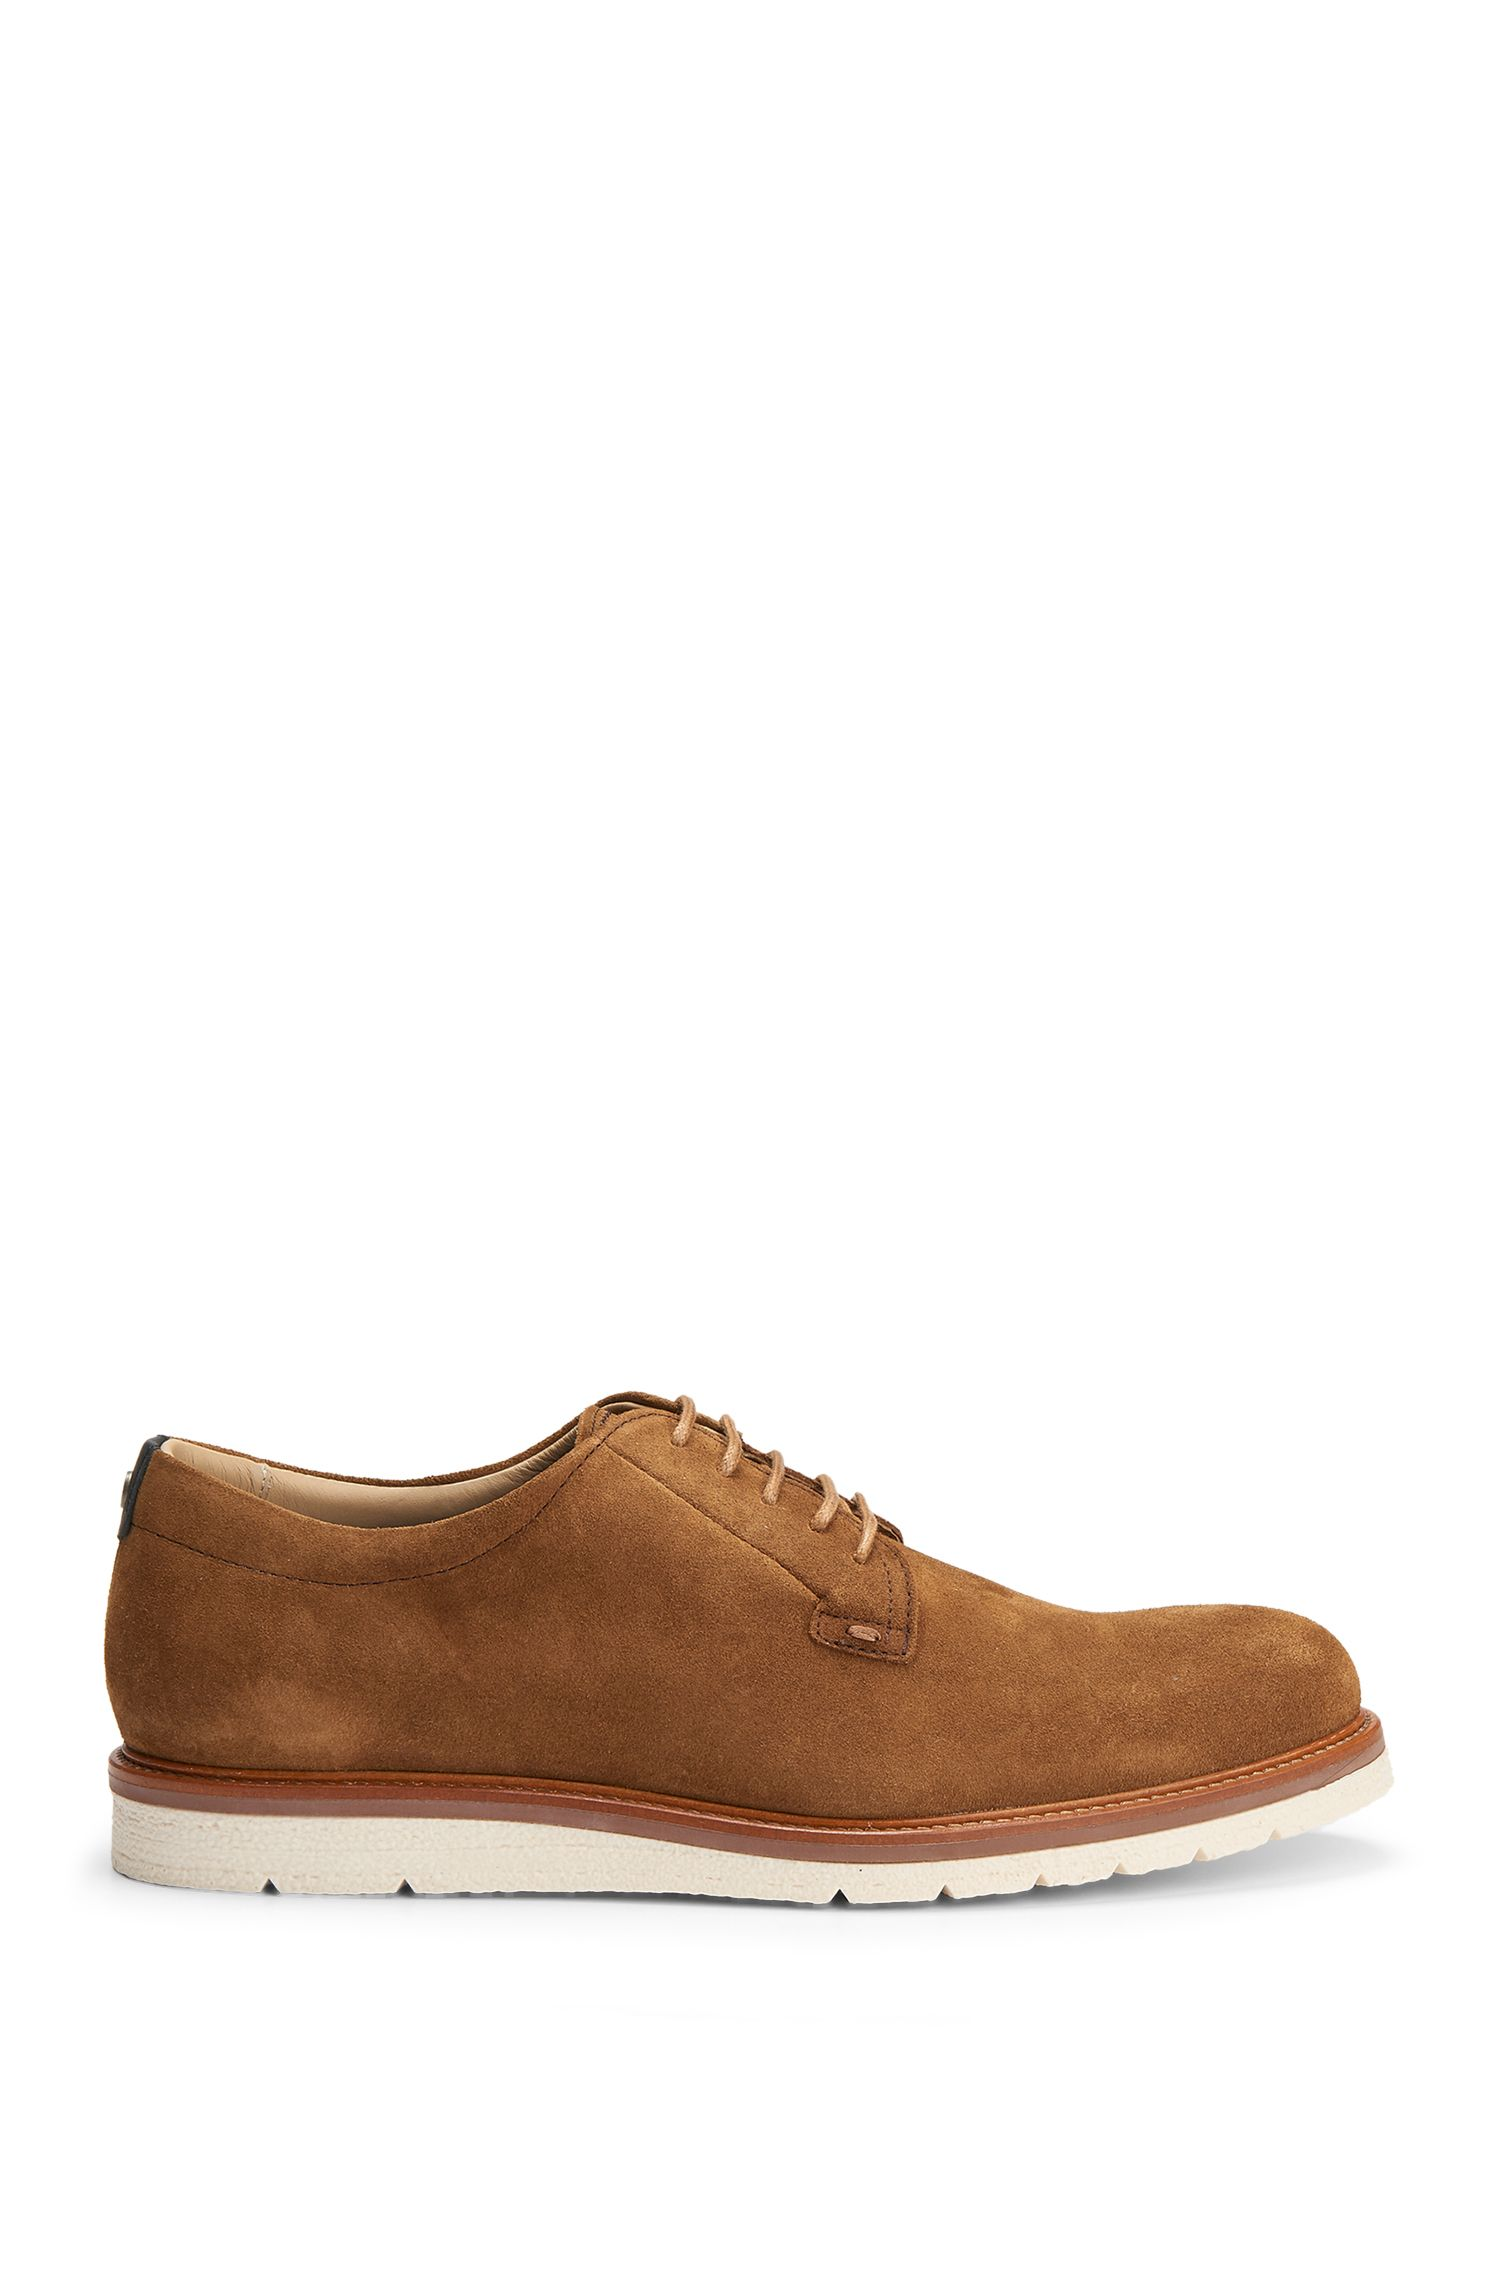 Suede Derby Shoe | Tuned Derb Sd1